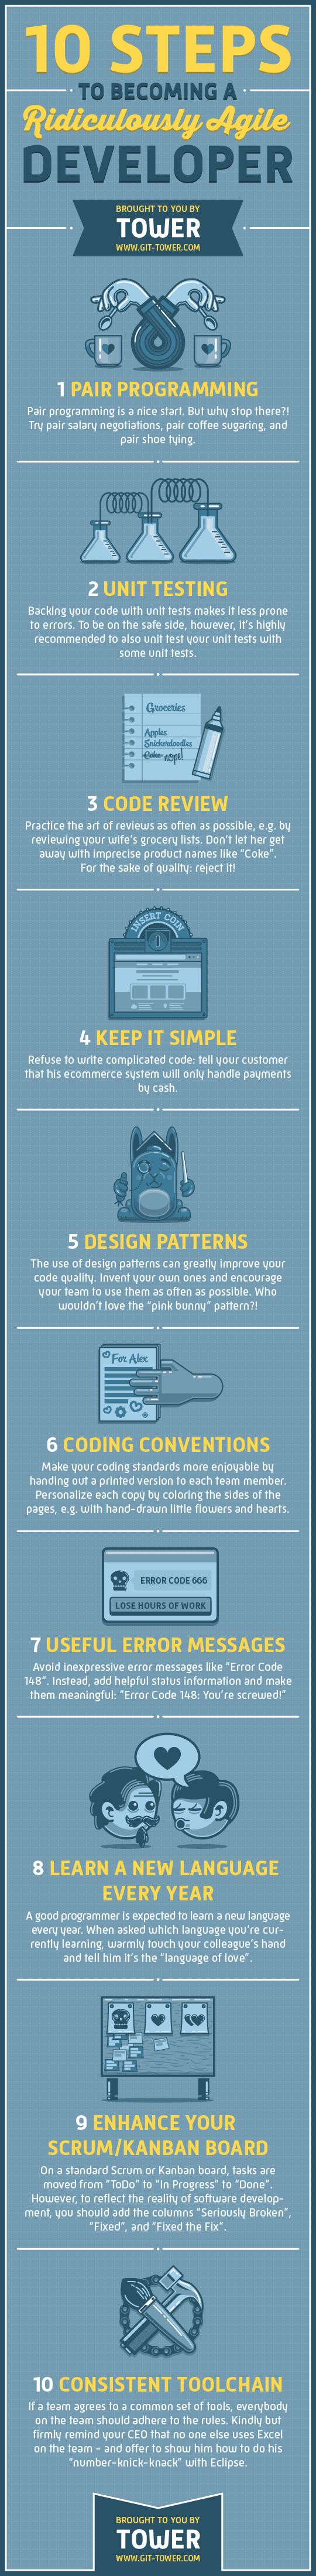 10 Steps to Becoming a Ridiculously #Agile #Developer | Infographic by @gittower